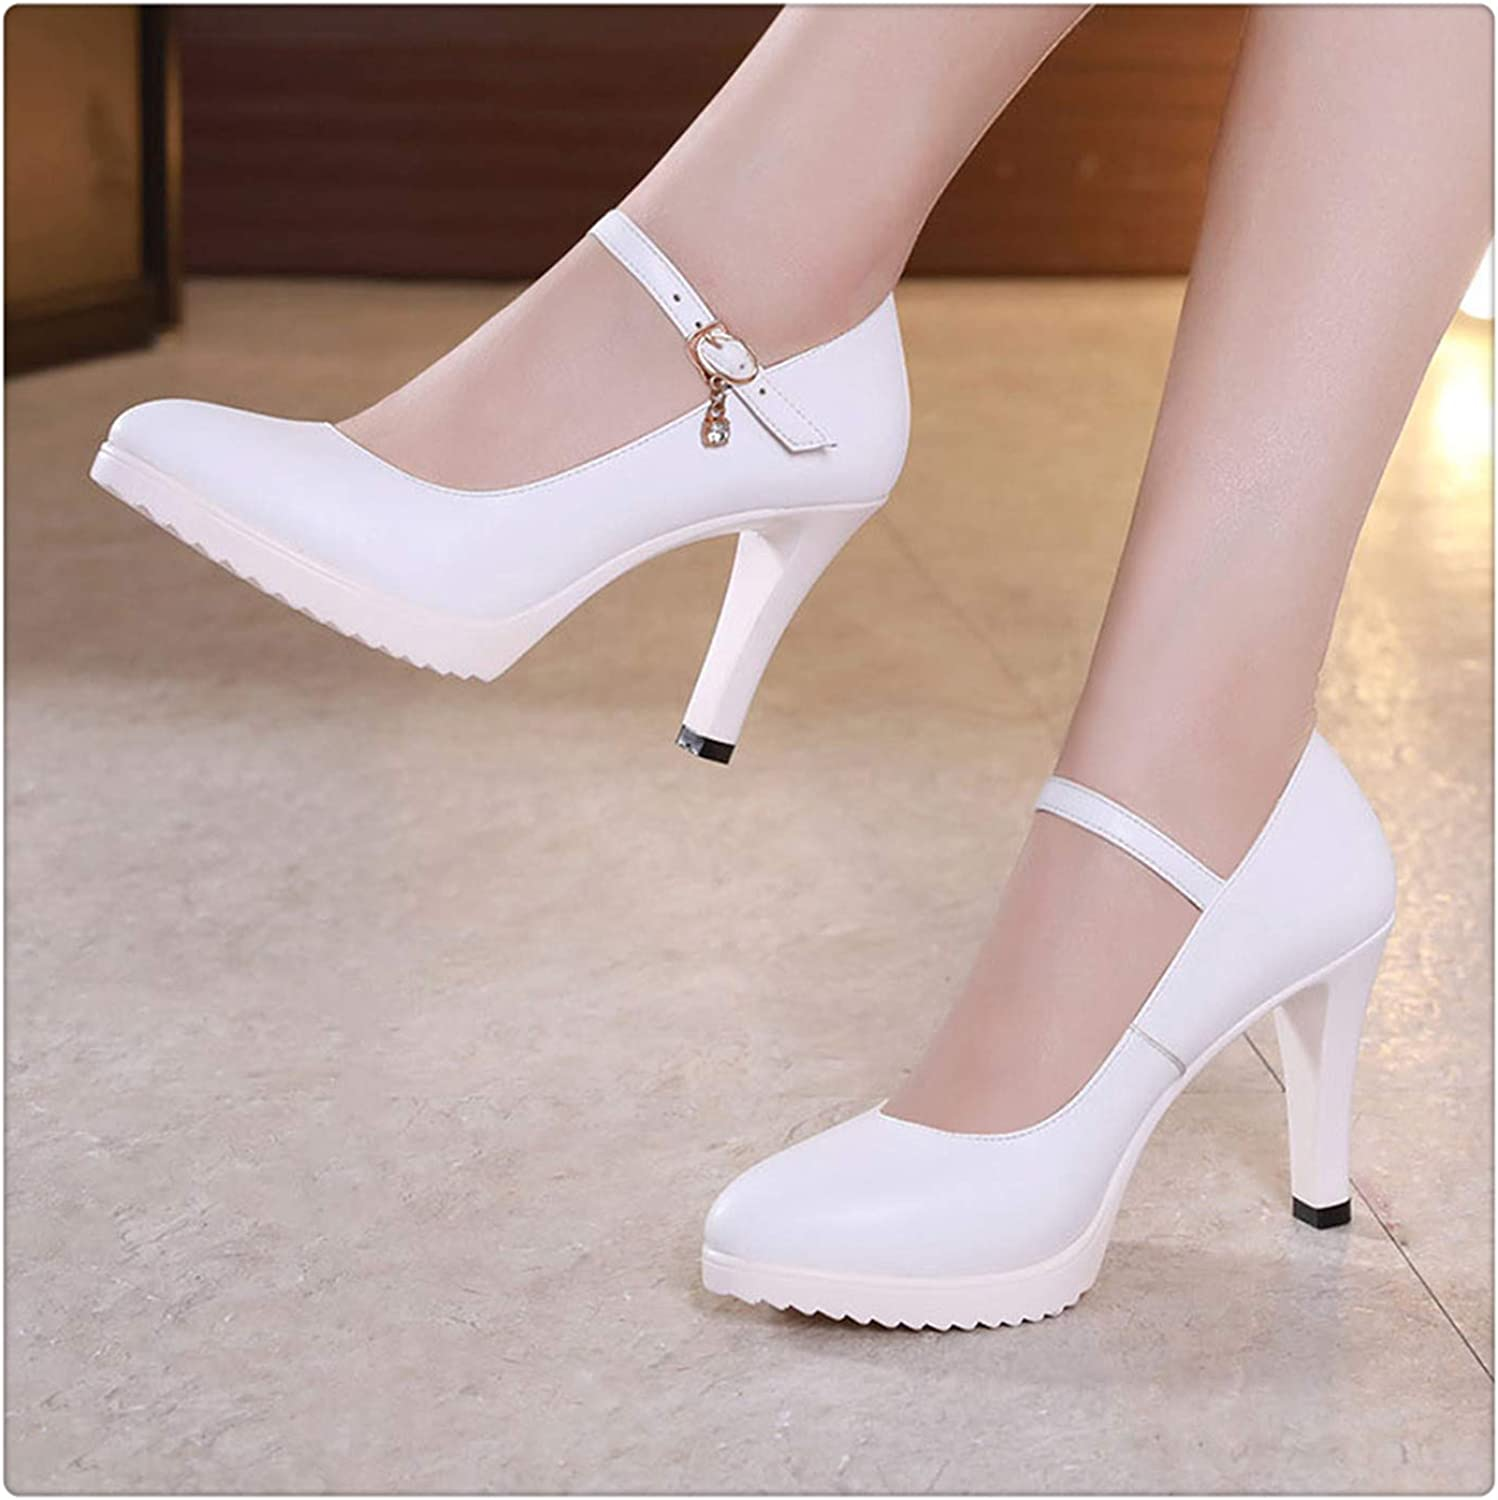 GLOPY& Pointed Toe Women Genuine Leather shoes for Wedding Women Platform Pumps with High Heels shoes for Office Work shoes White8CM 3.5